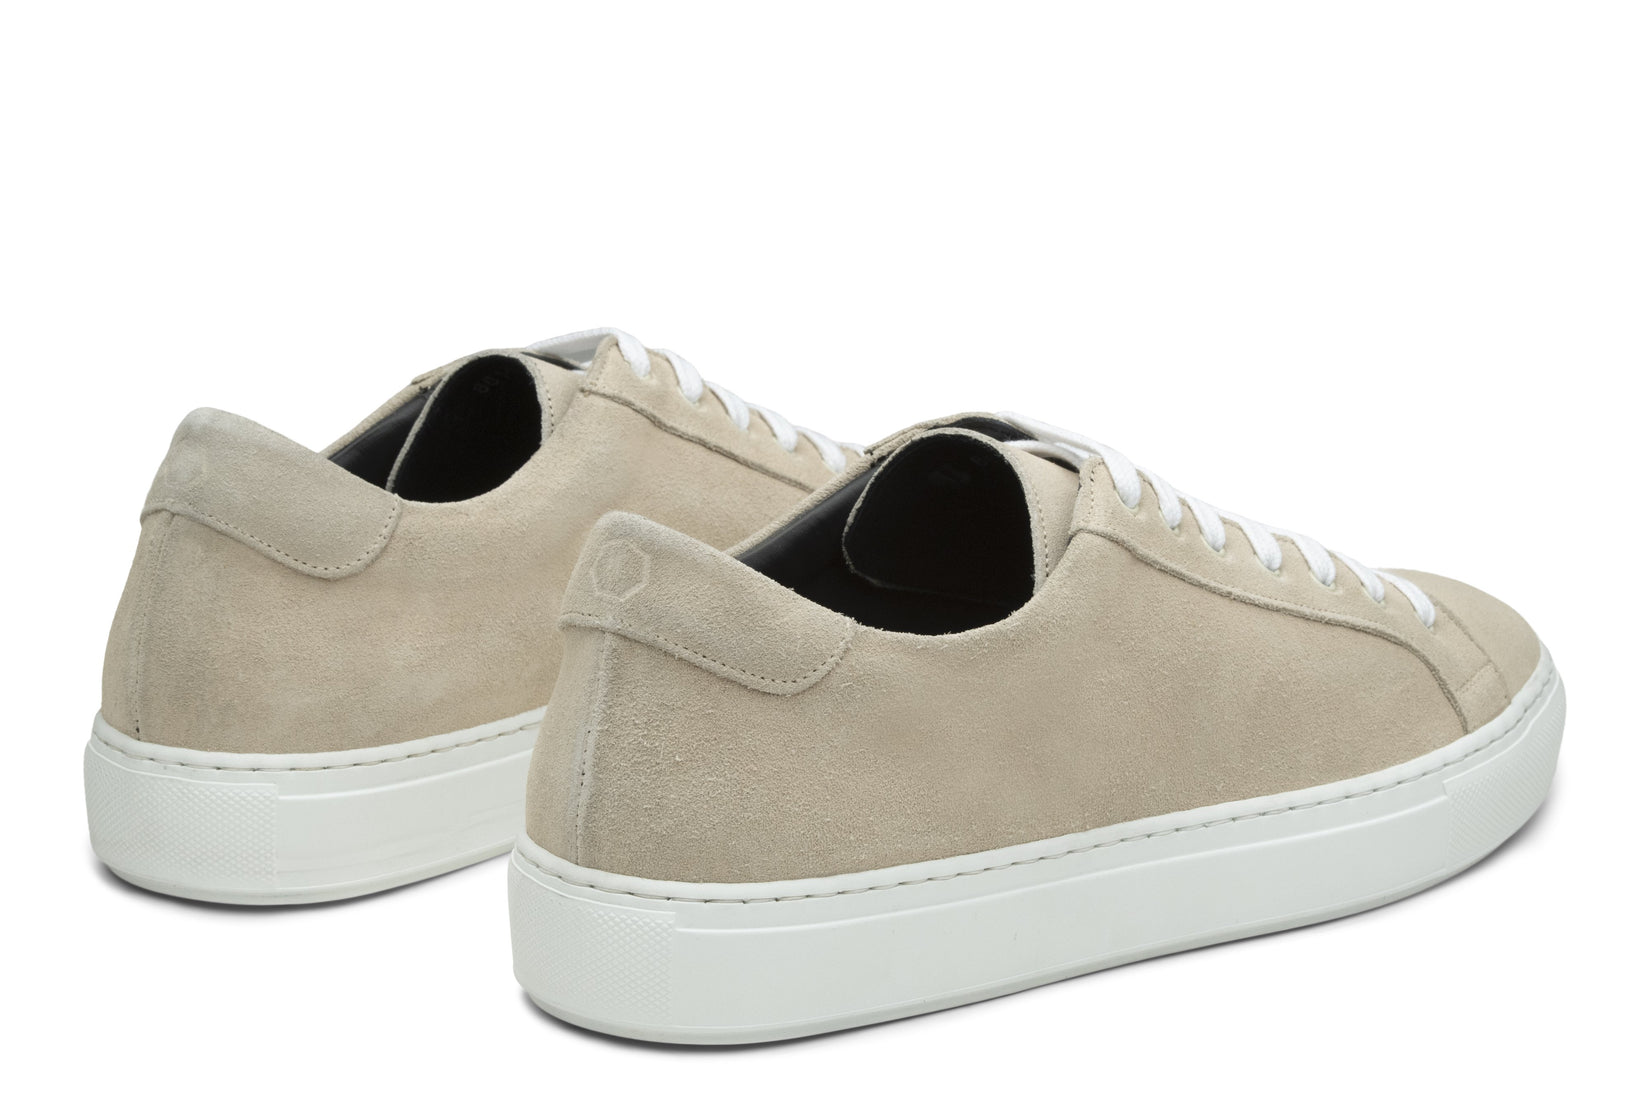 Saturday Lace-Up Sneaker in Cream